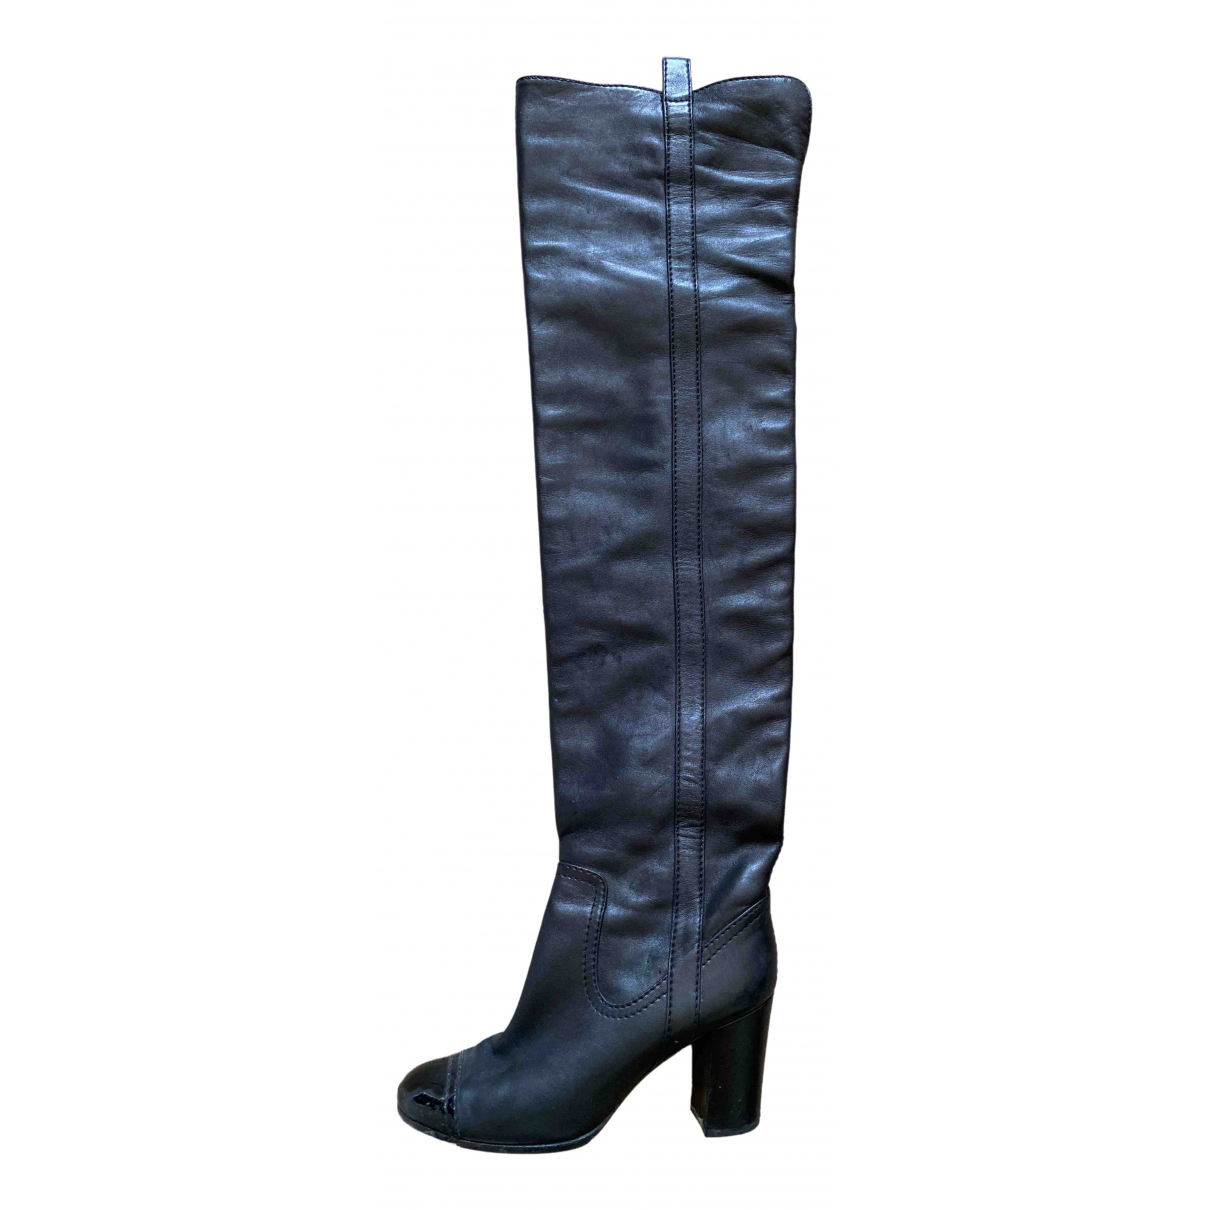 Chanel \N Black Leather Boots for Women 36.5 EU